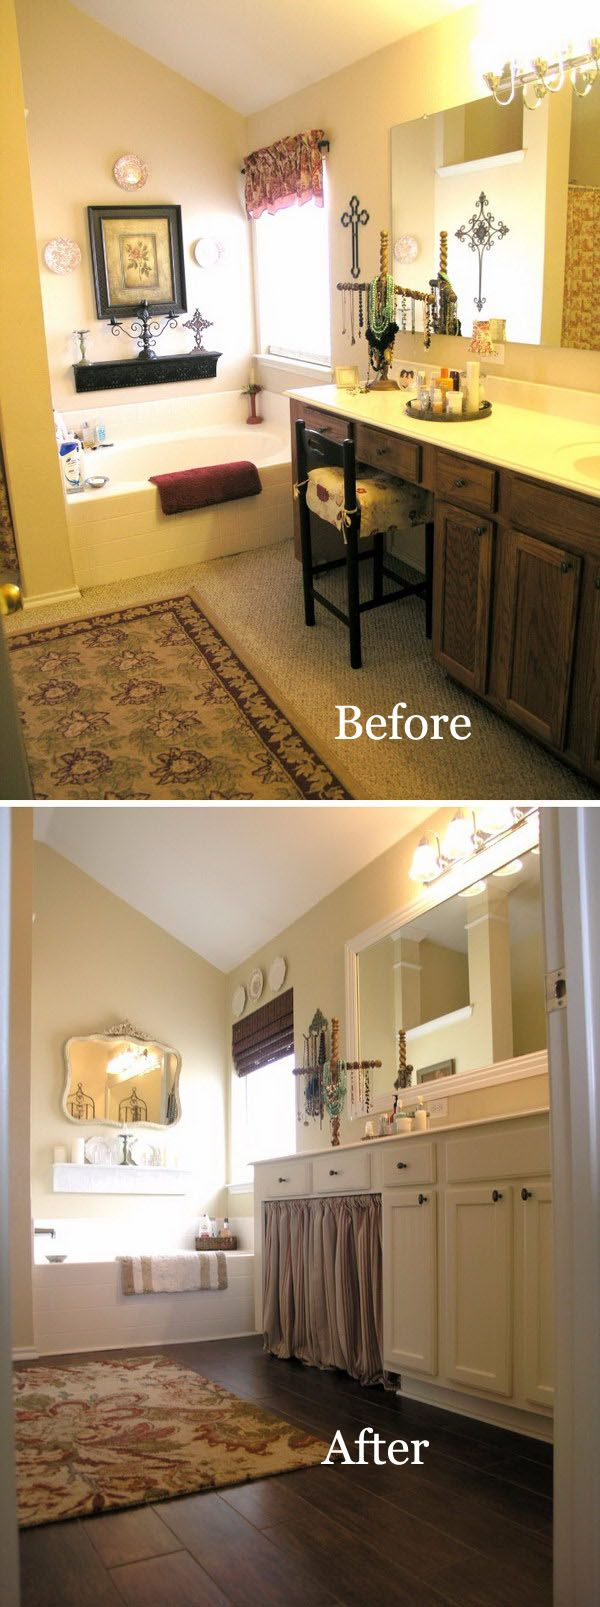 From Dark and Dirty to Bright and Clean Master Bathroom Transformation.